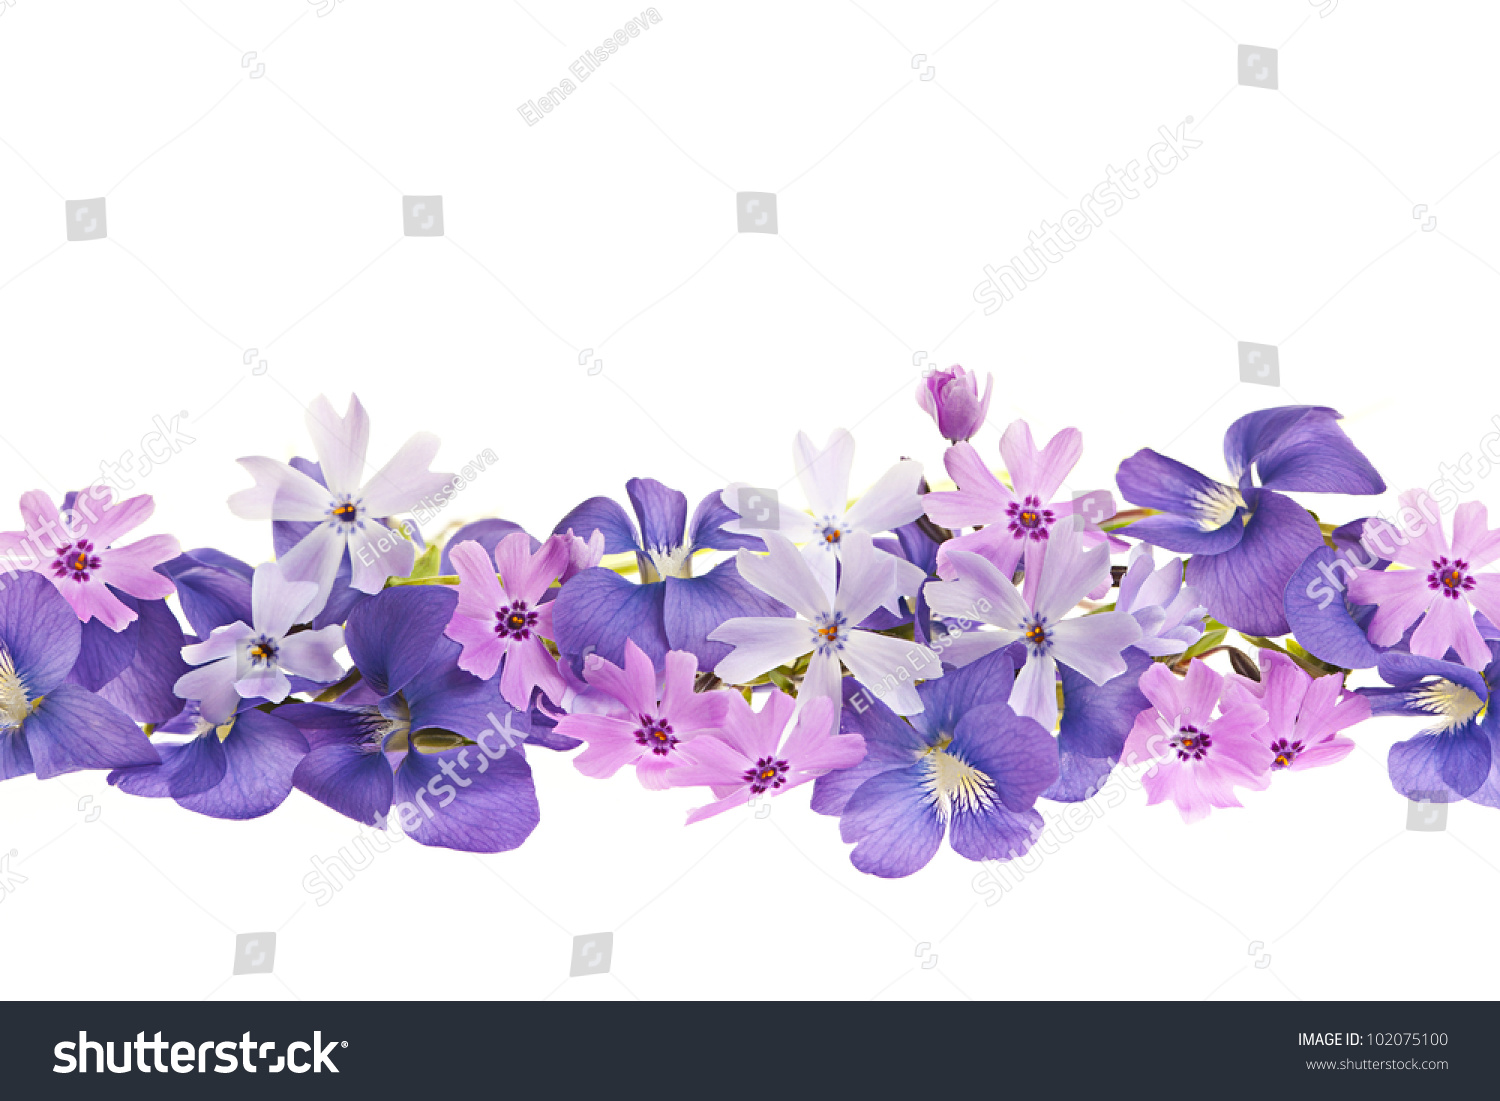 Royalty Free Arrangement Of Purple Violets And Moss 102075100